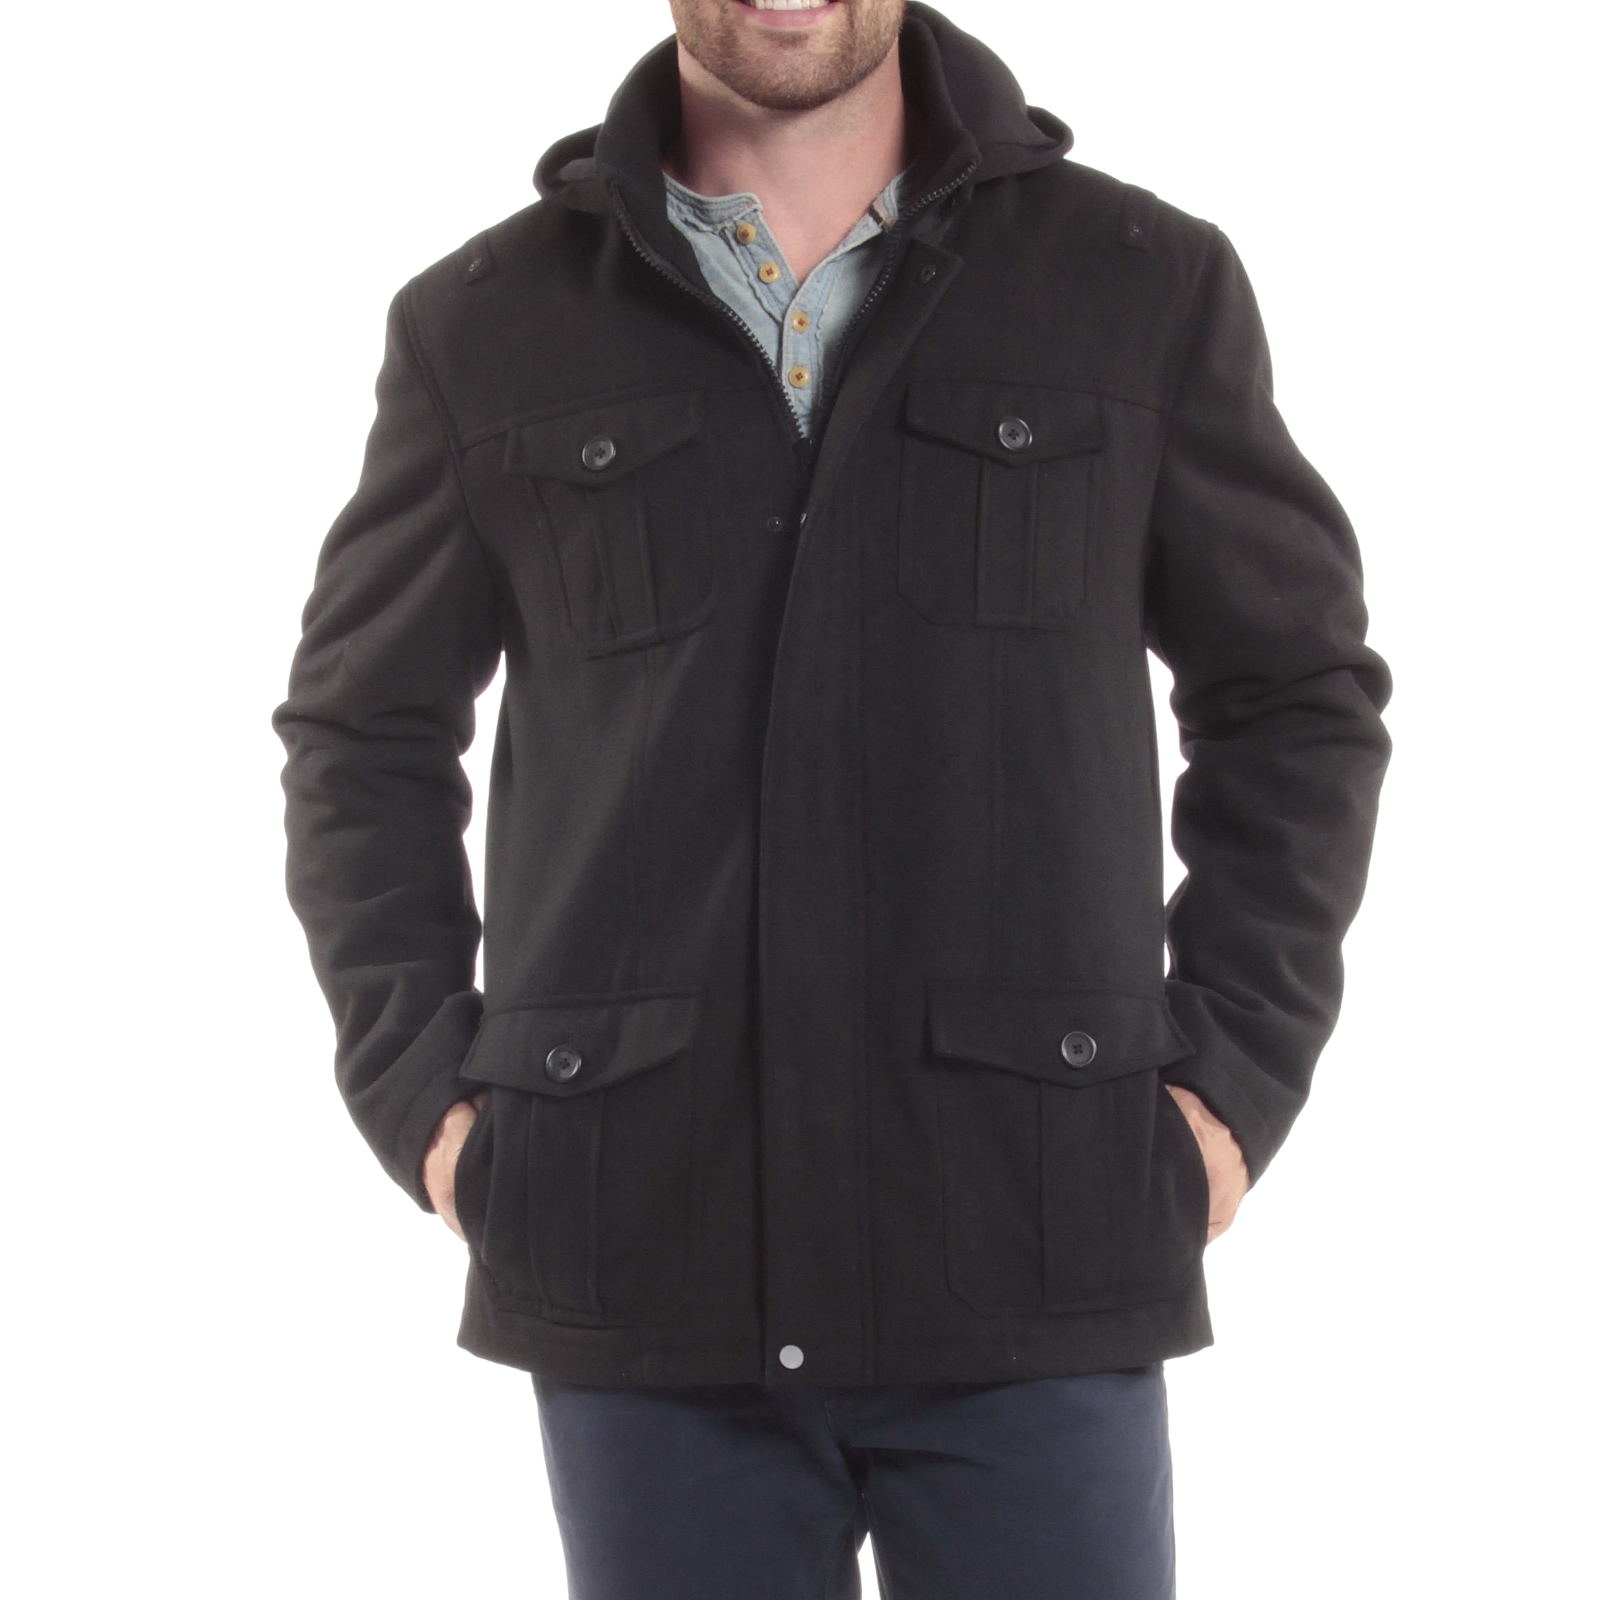 Alpine-Swiss-Noah-Mens-Wool-Coat-Parka-with-Removable-Hood-Jacket-Cargo-Pockets thumbnail 20